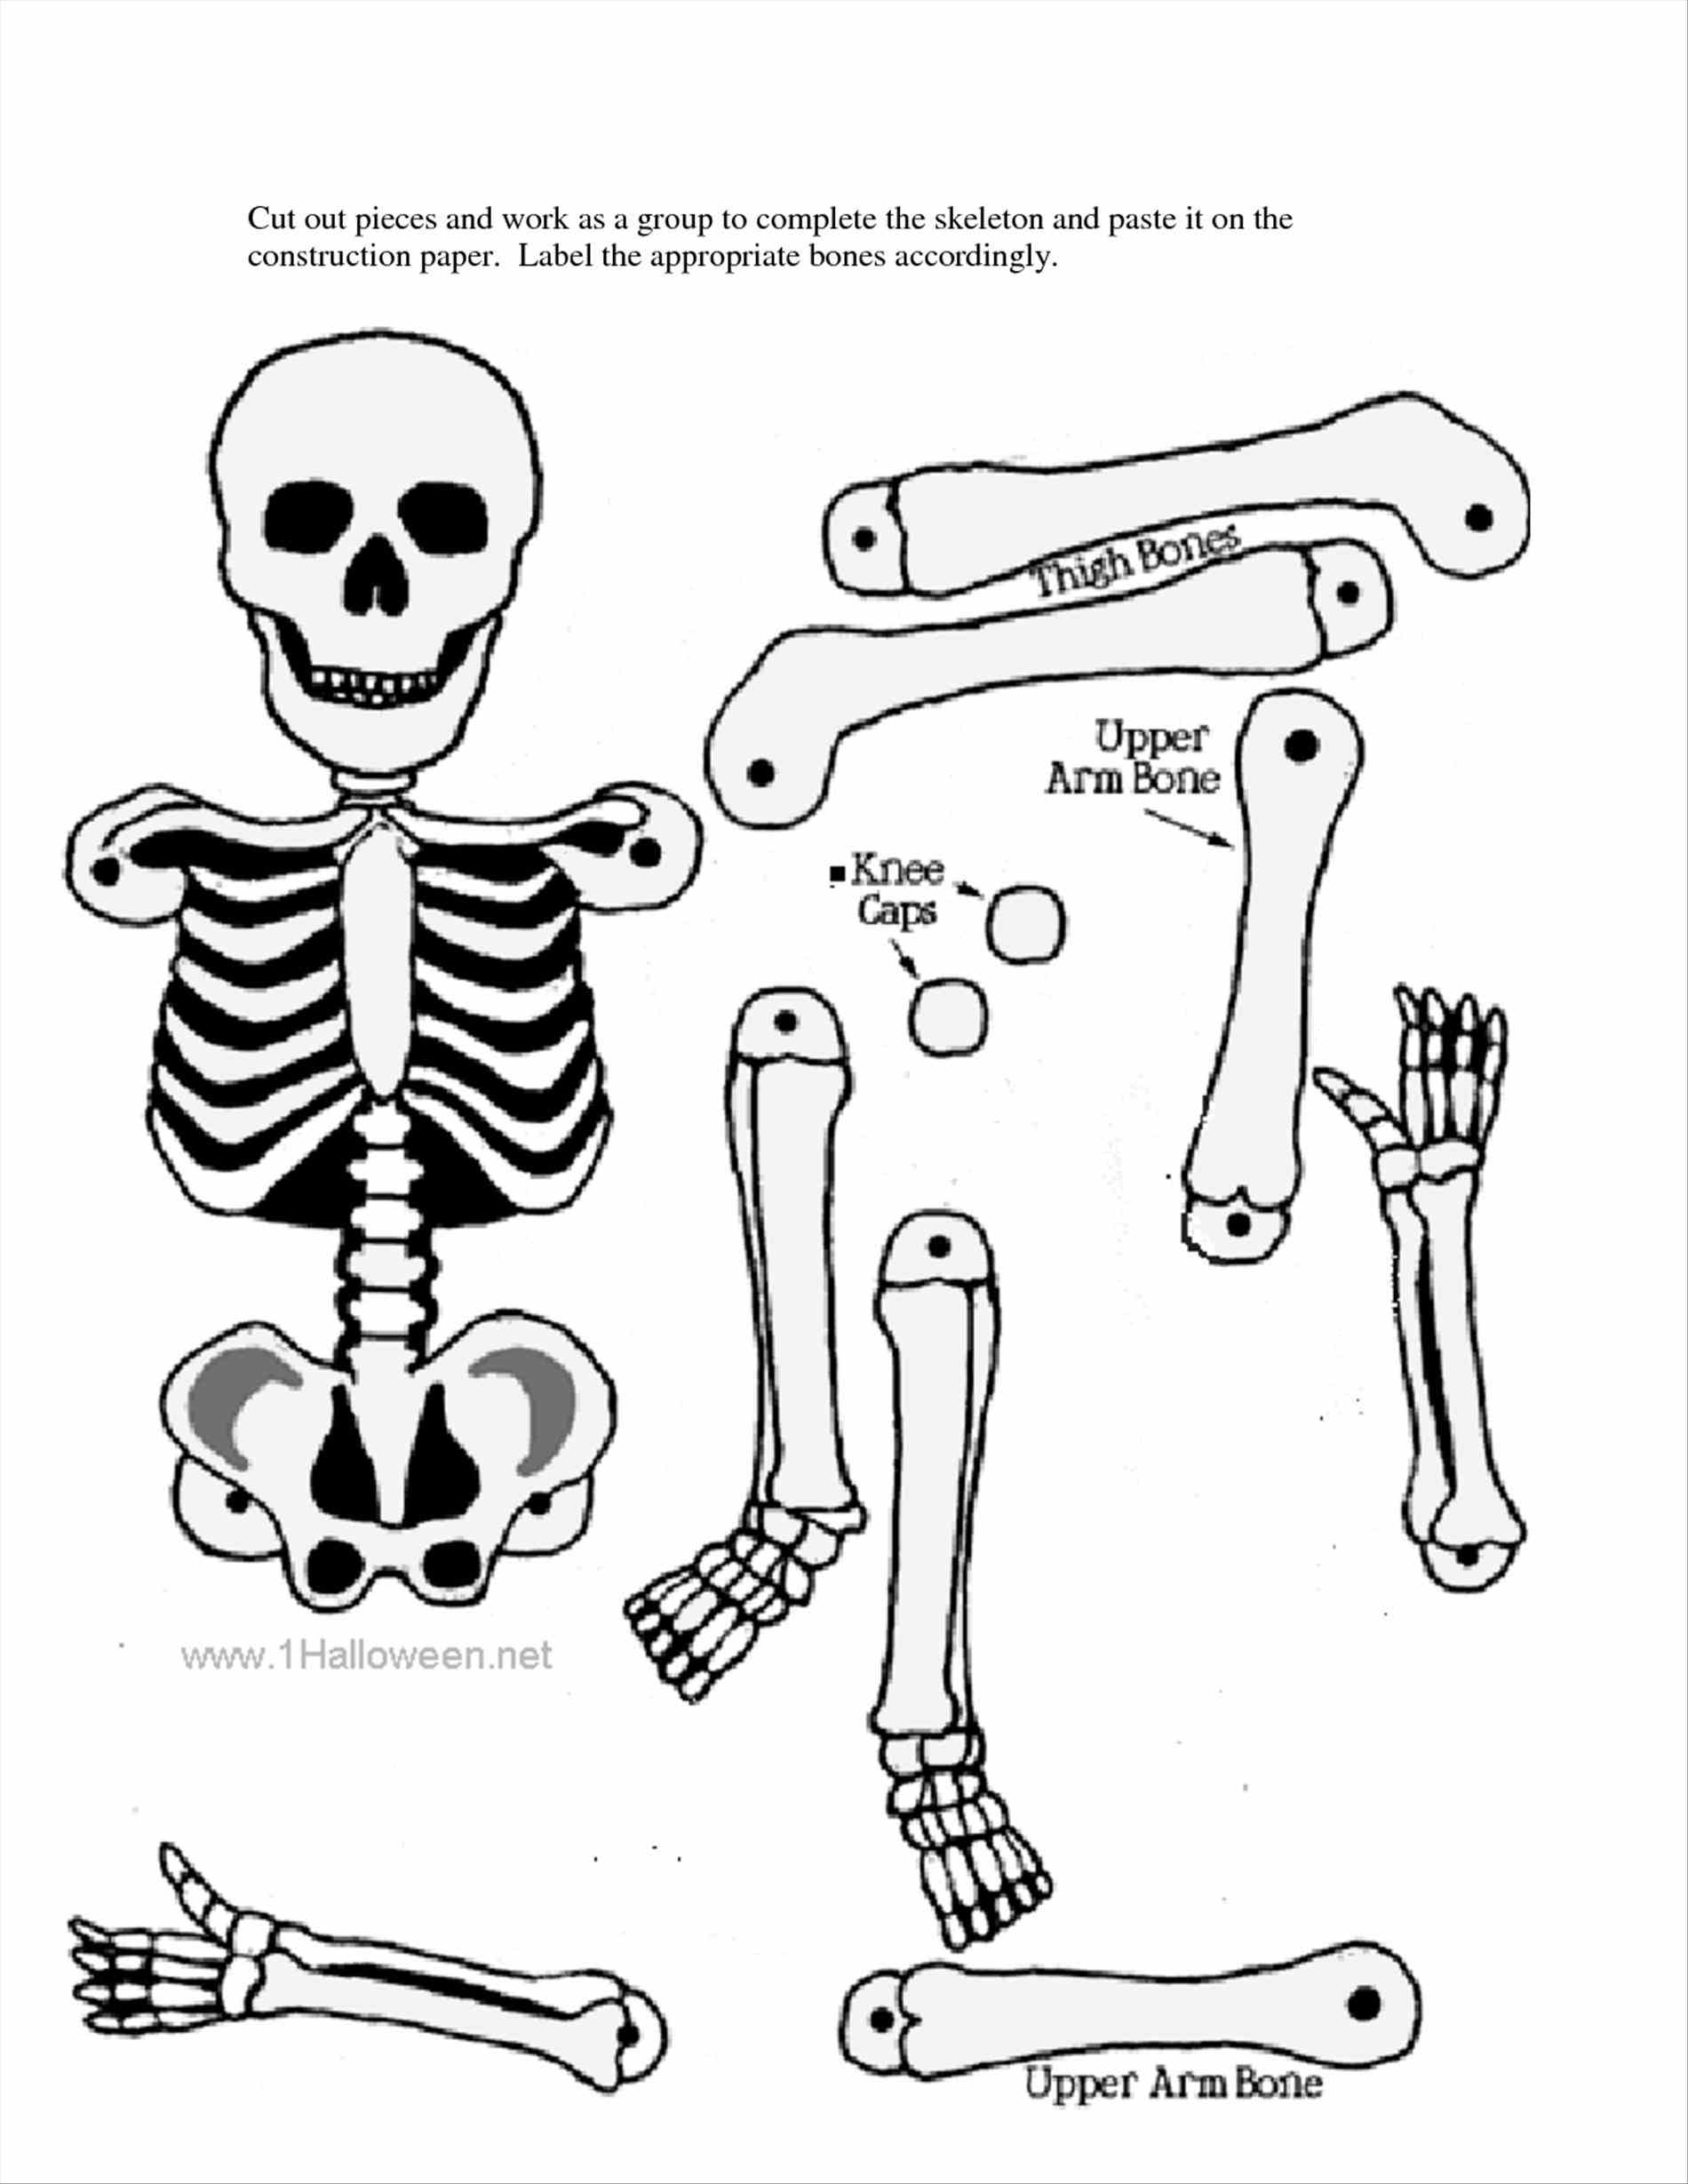 Human Skeleton Drawing At Getdrawings Free For Personal Use